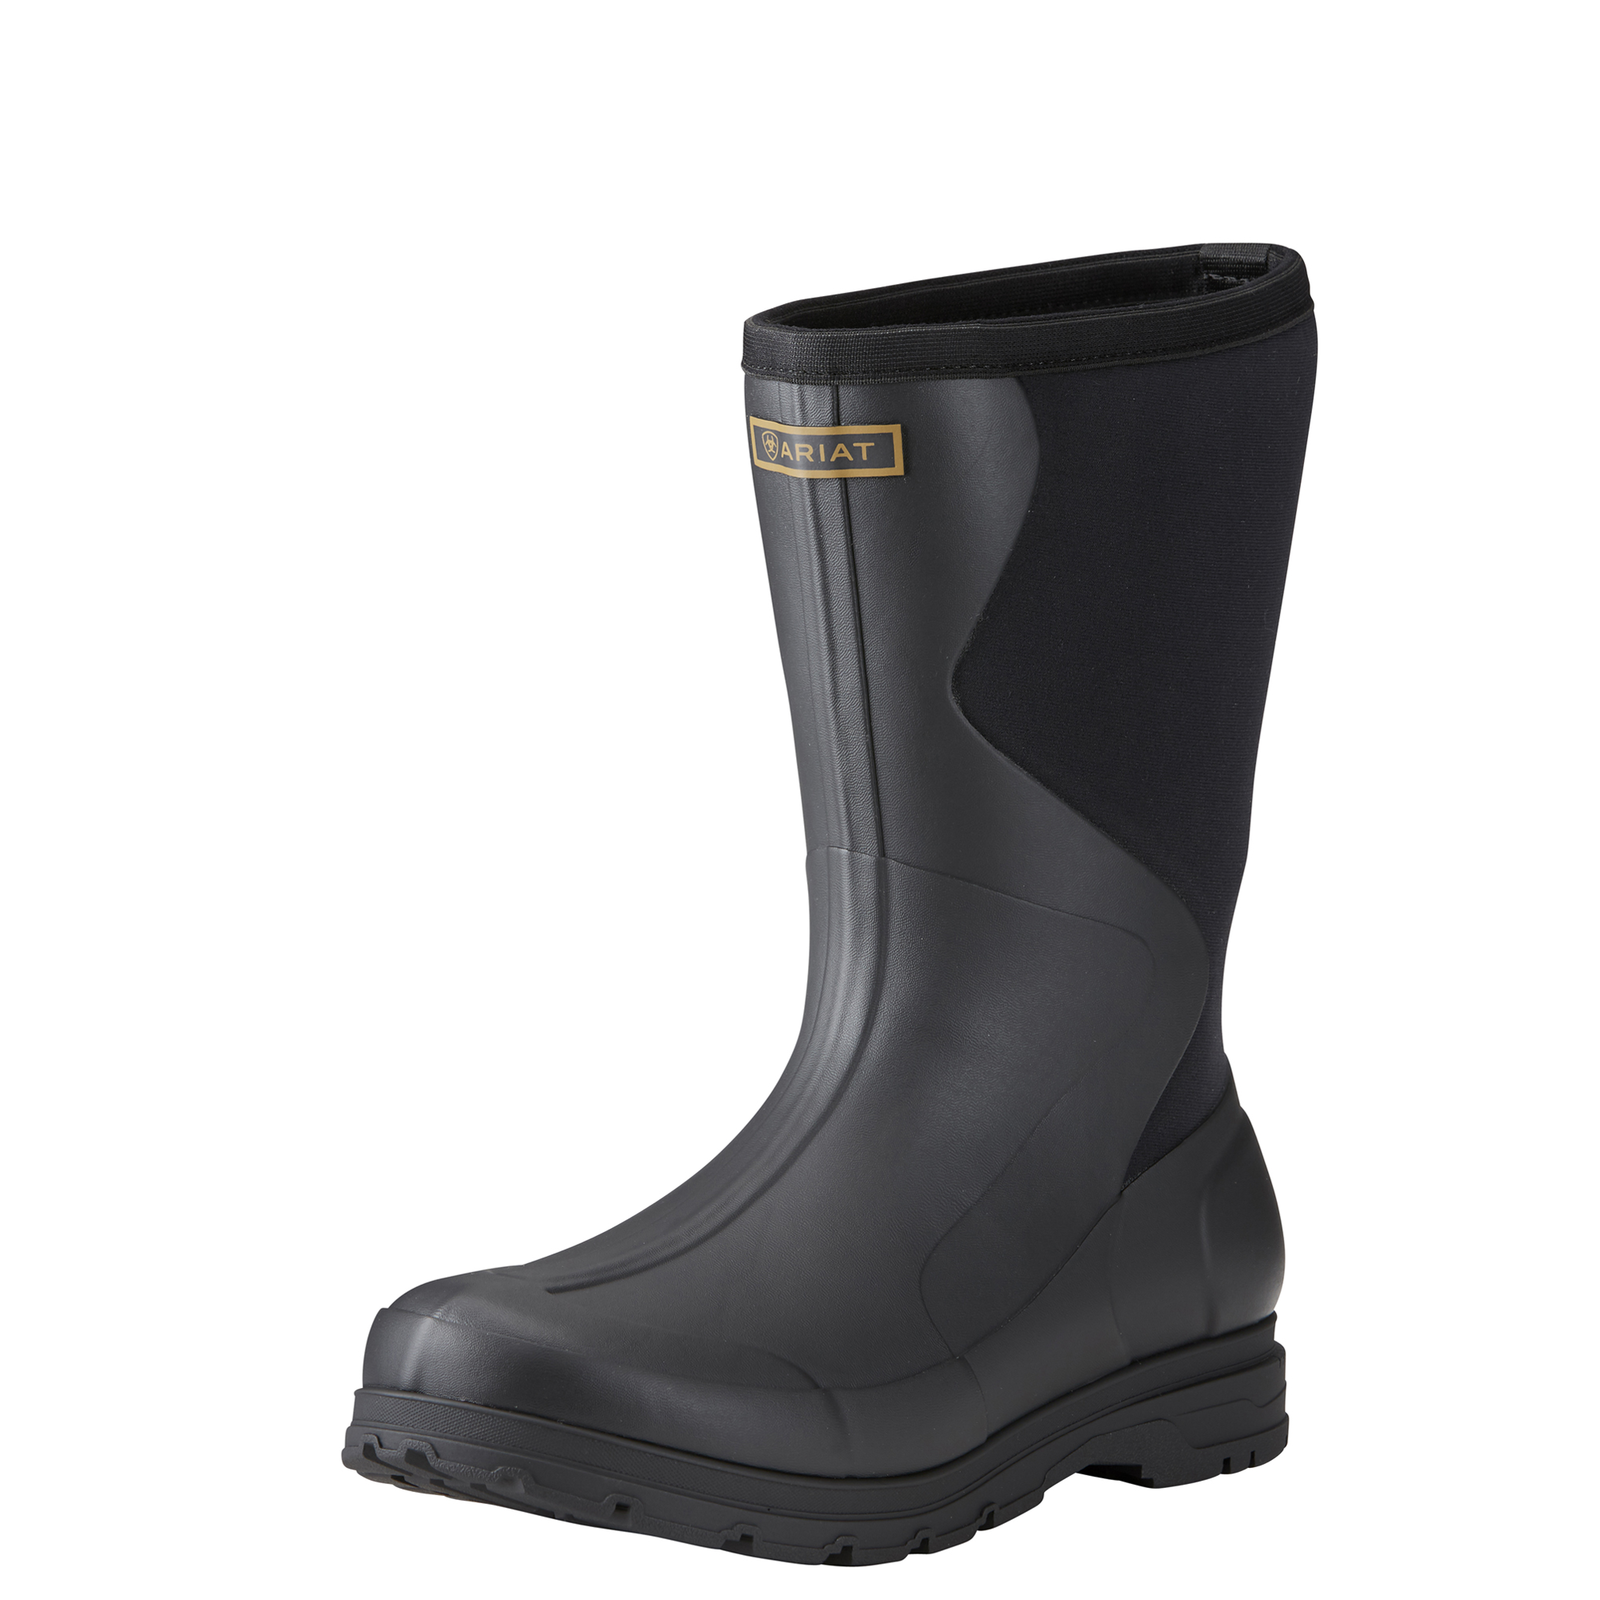 Ariat Springfield Mens Rubber Boot - Black